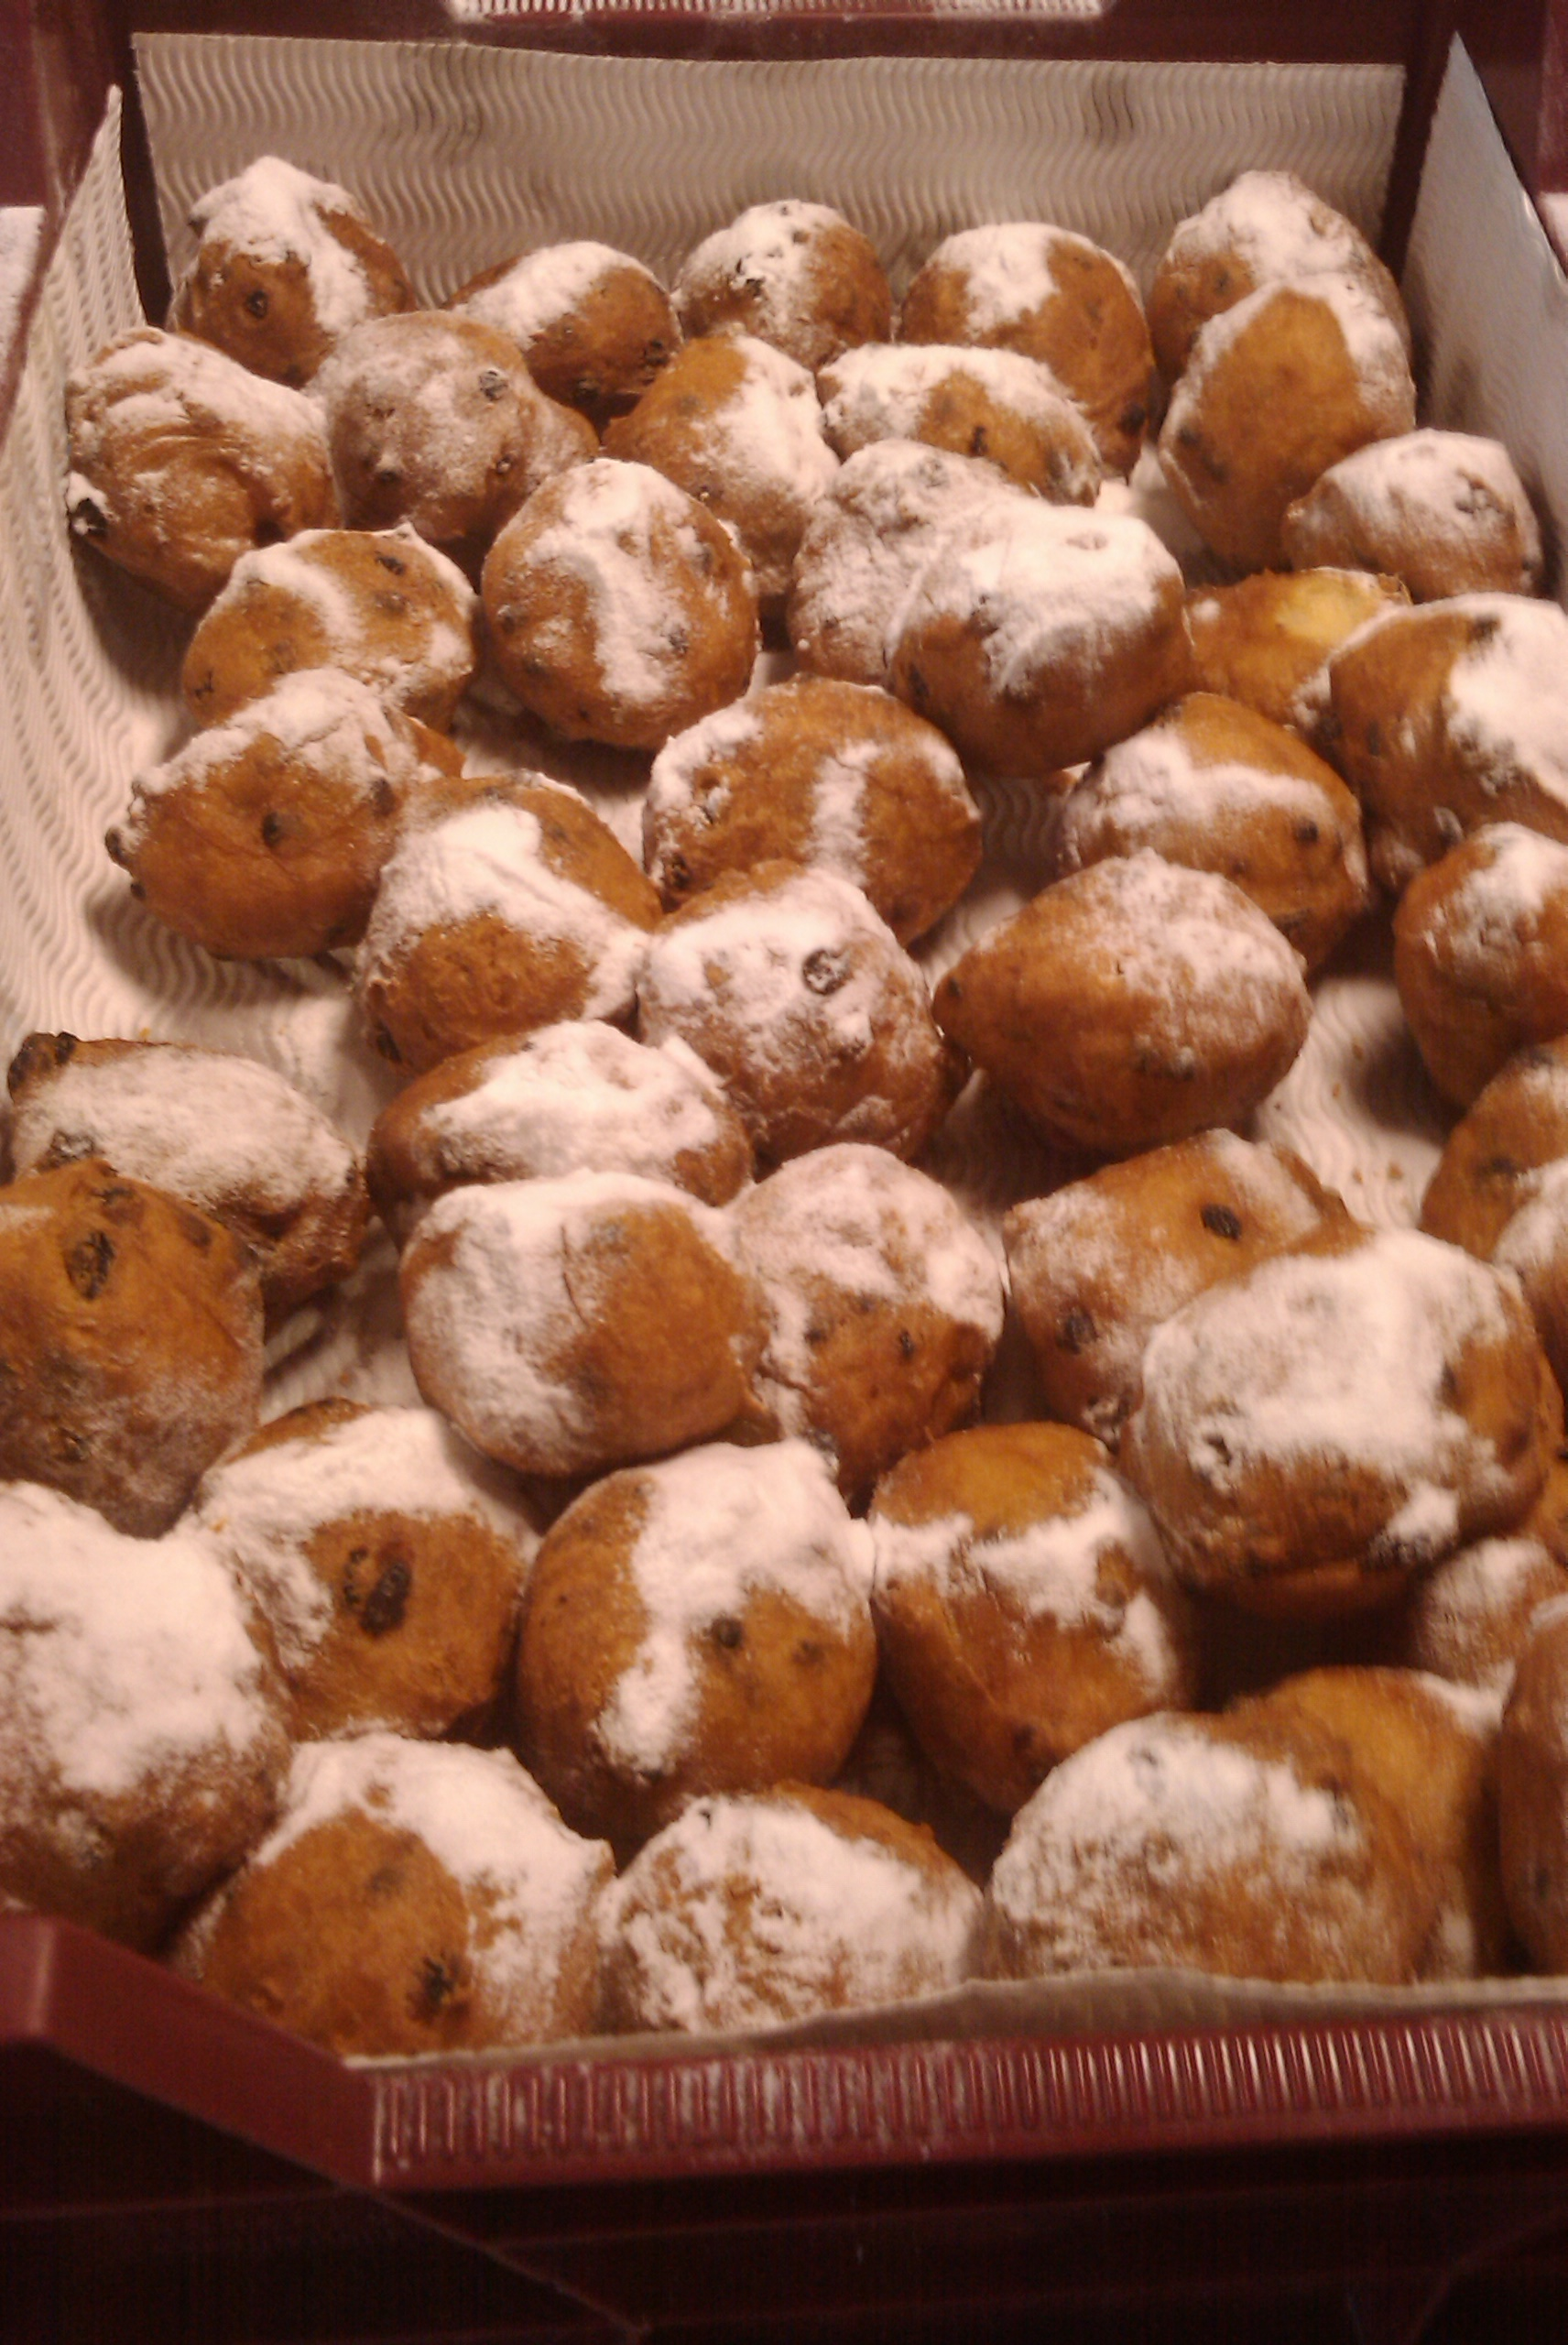 naaldwijk Holland :: dutch oliebollen.. this is a original dutch treat, deepfried dough filled with raises and topped with sugar. this is where the donuts are copied from!